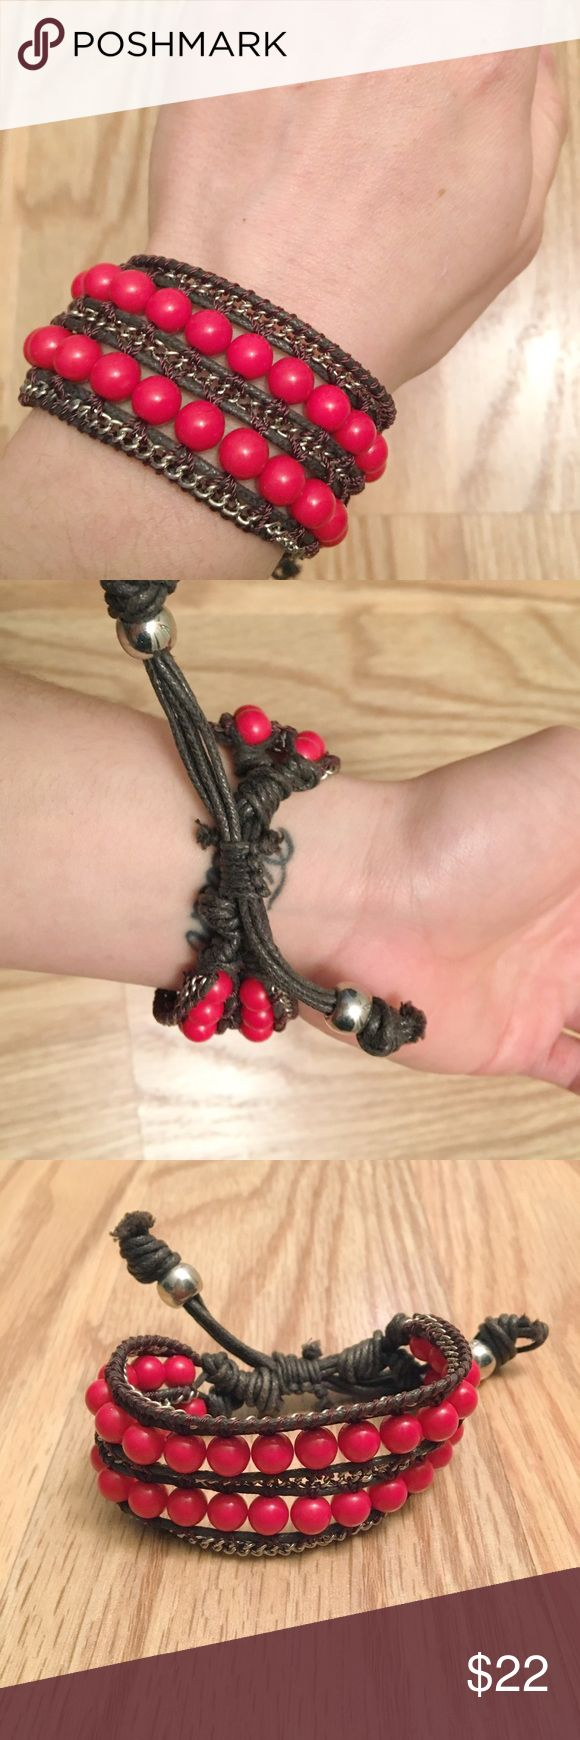 """NWOT Red and brown slip knot bracelet NWOT Brown cord bracelet with silver chain woven in   2 layers of coral red beads   has slip knot to adjust up to 10"""" long Jewelry Bracelets"""